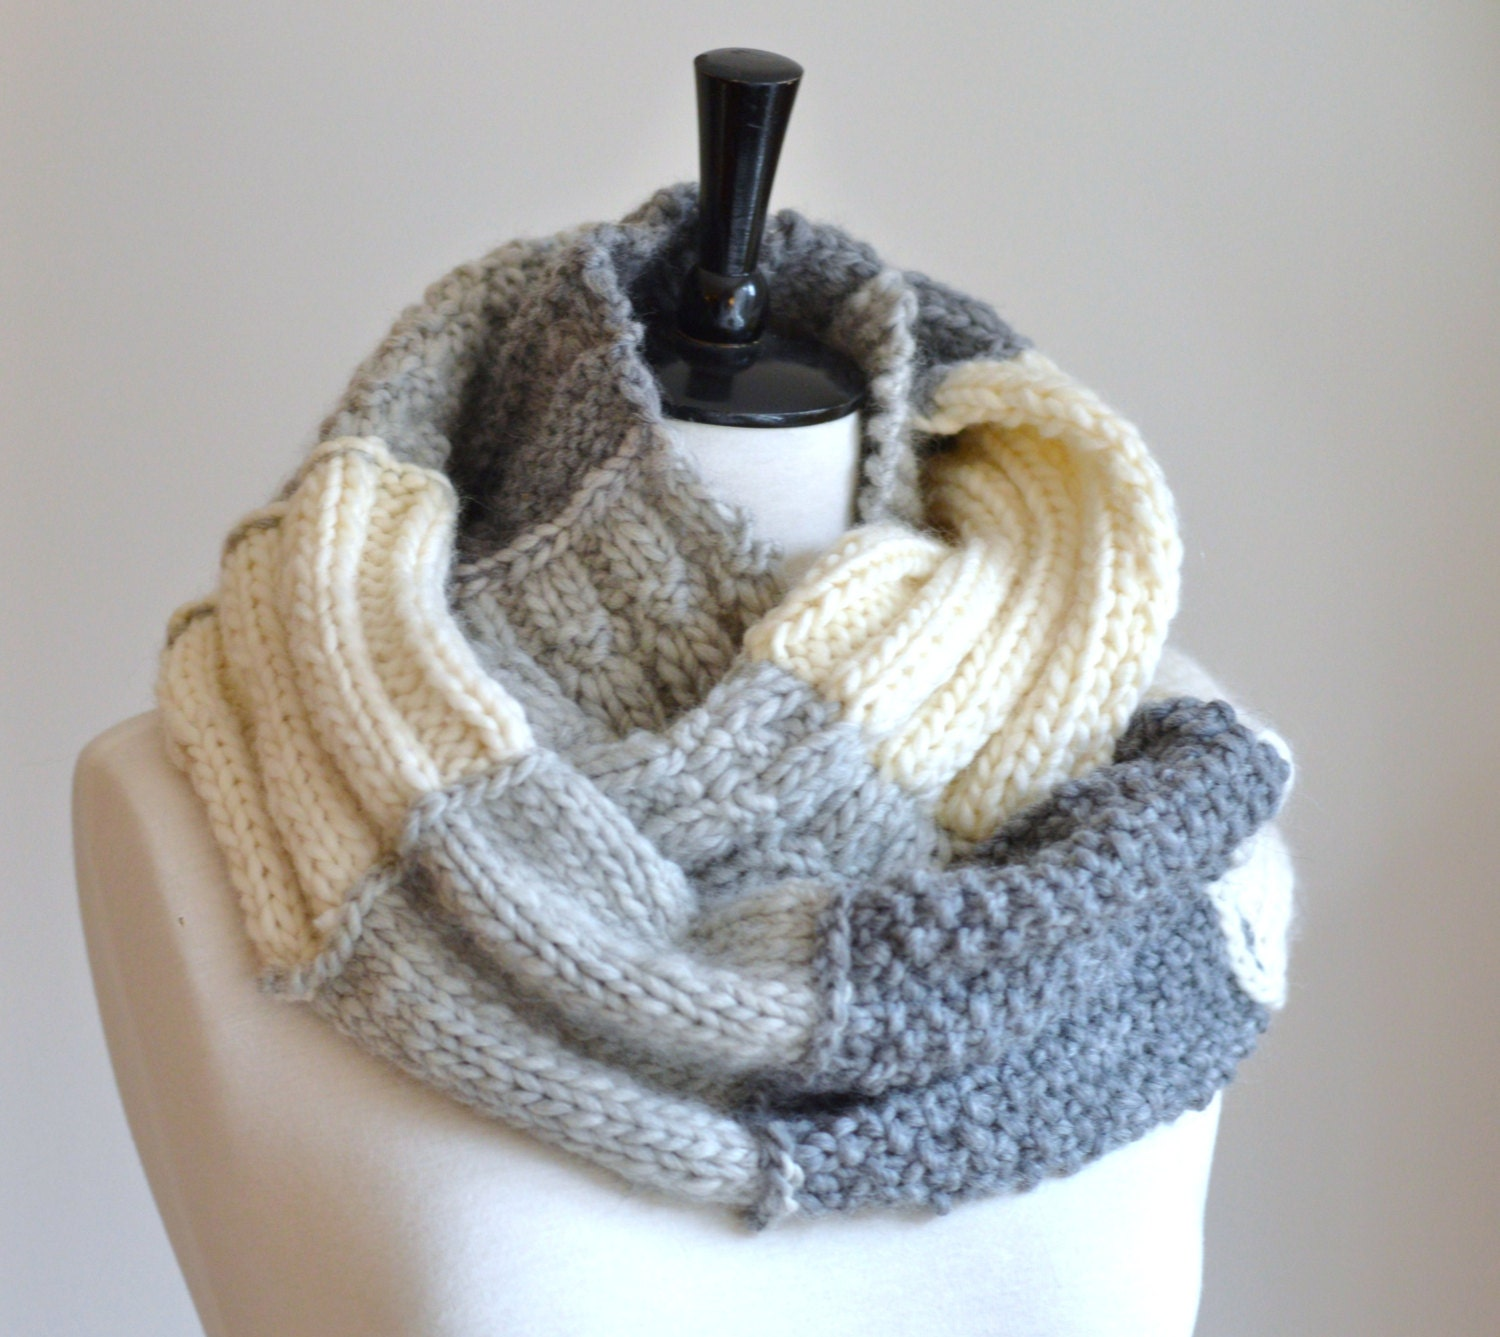 Easy Knitting Pattern For An Infinity Scarf : Easy Knitting Pattern Infinity Scarf Sampler by Richmondhillknits